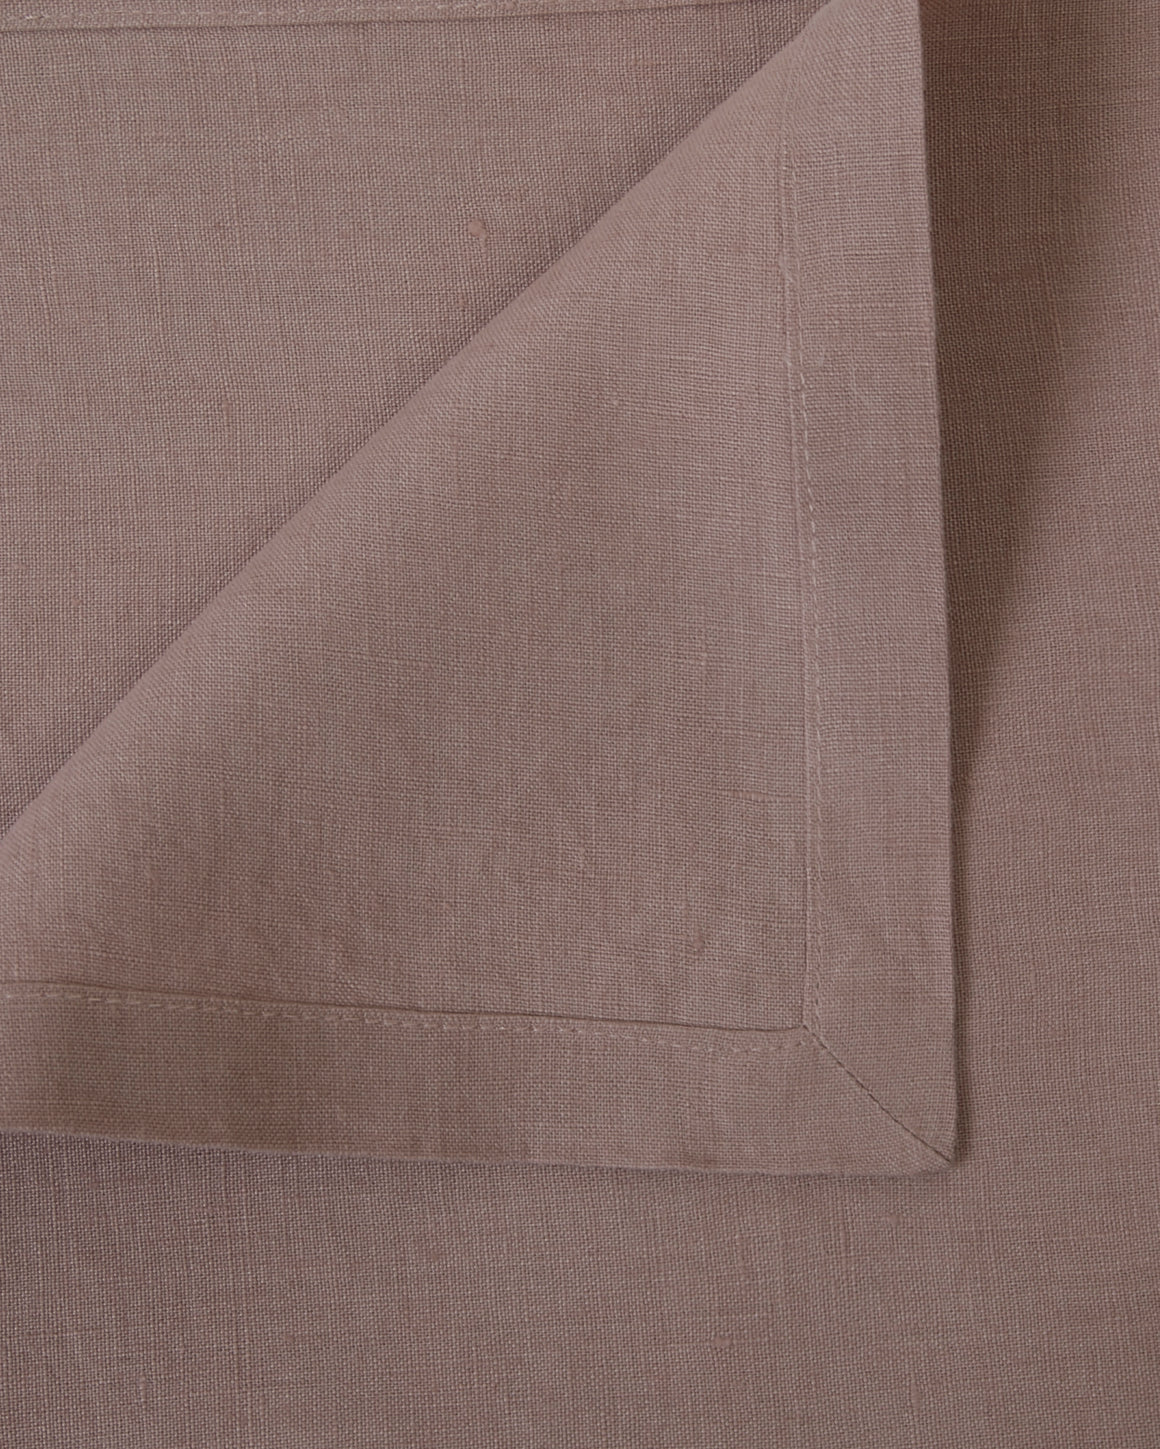 Berkeley Linen Table Napkins (Set of 4) - Orchid